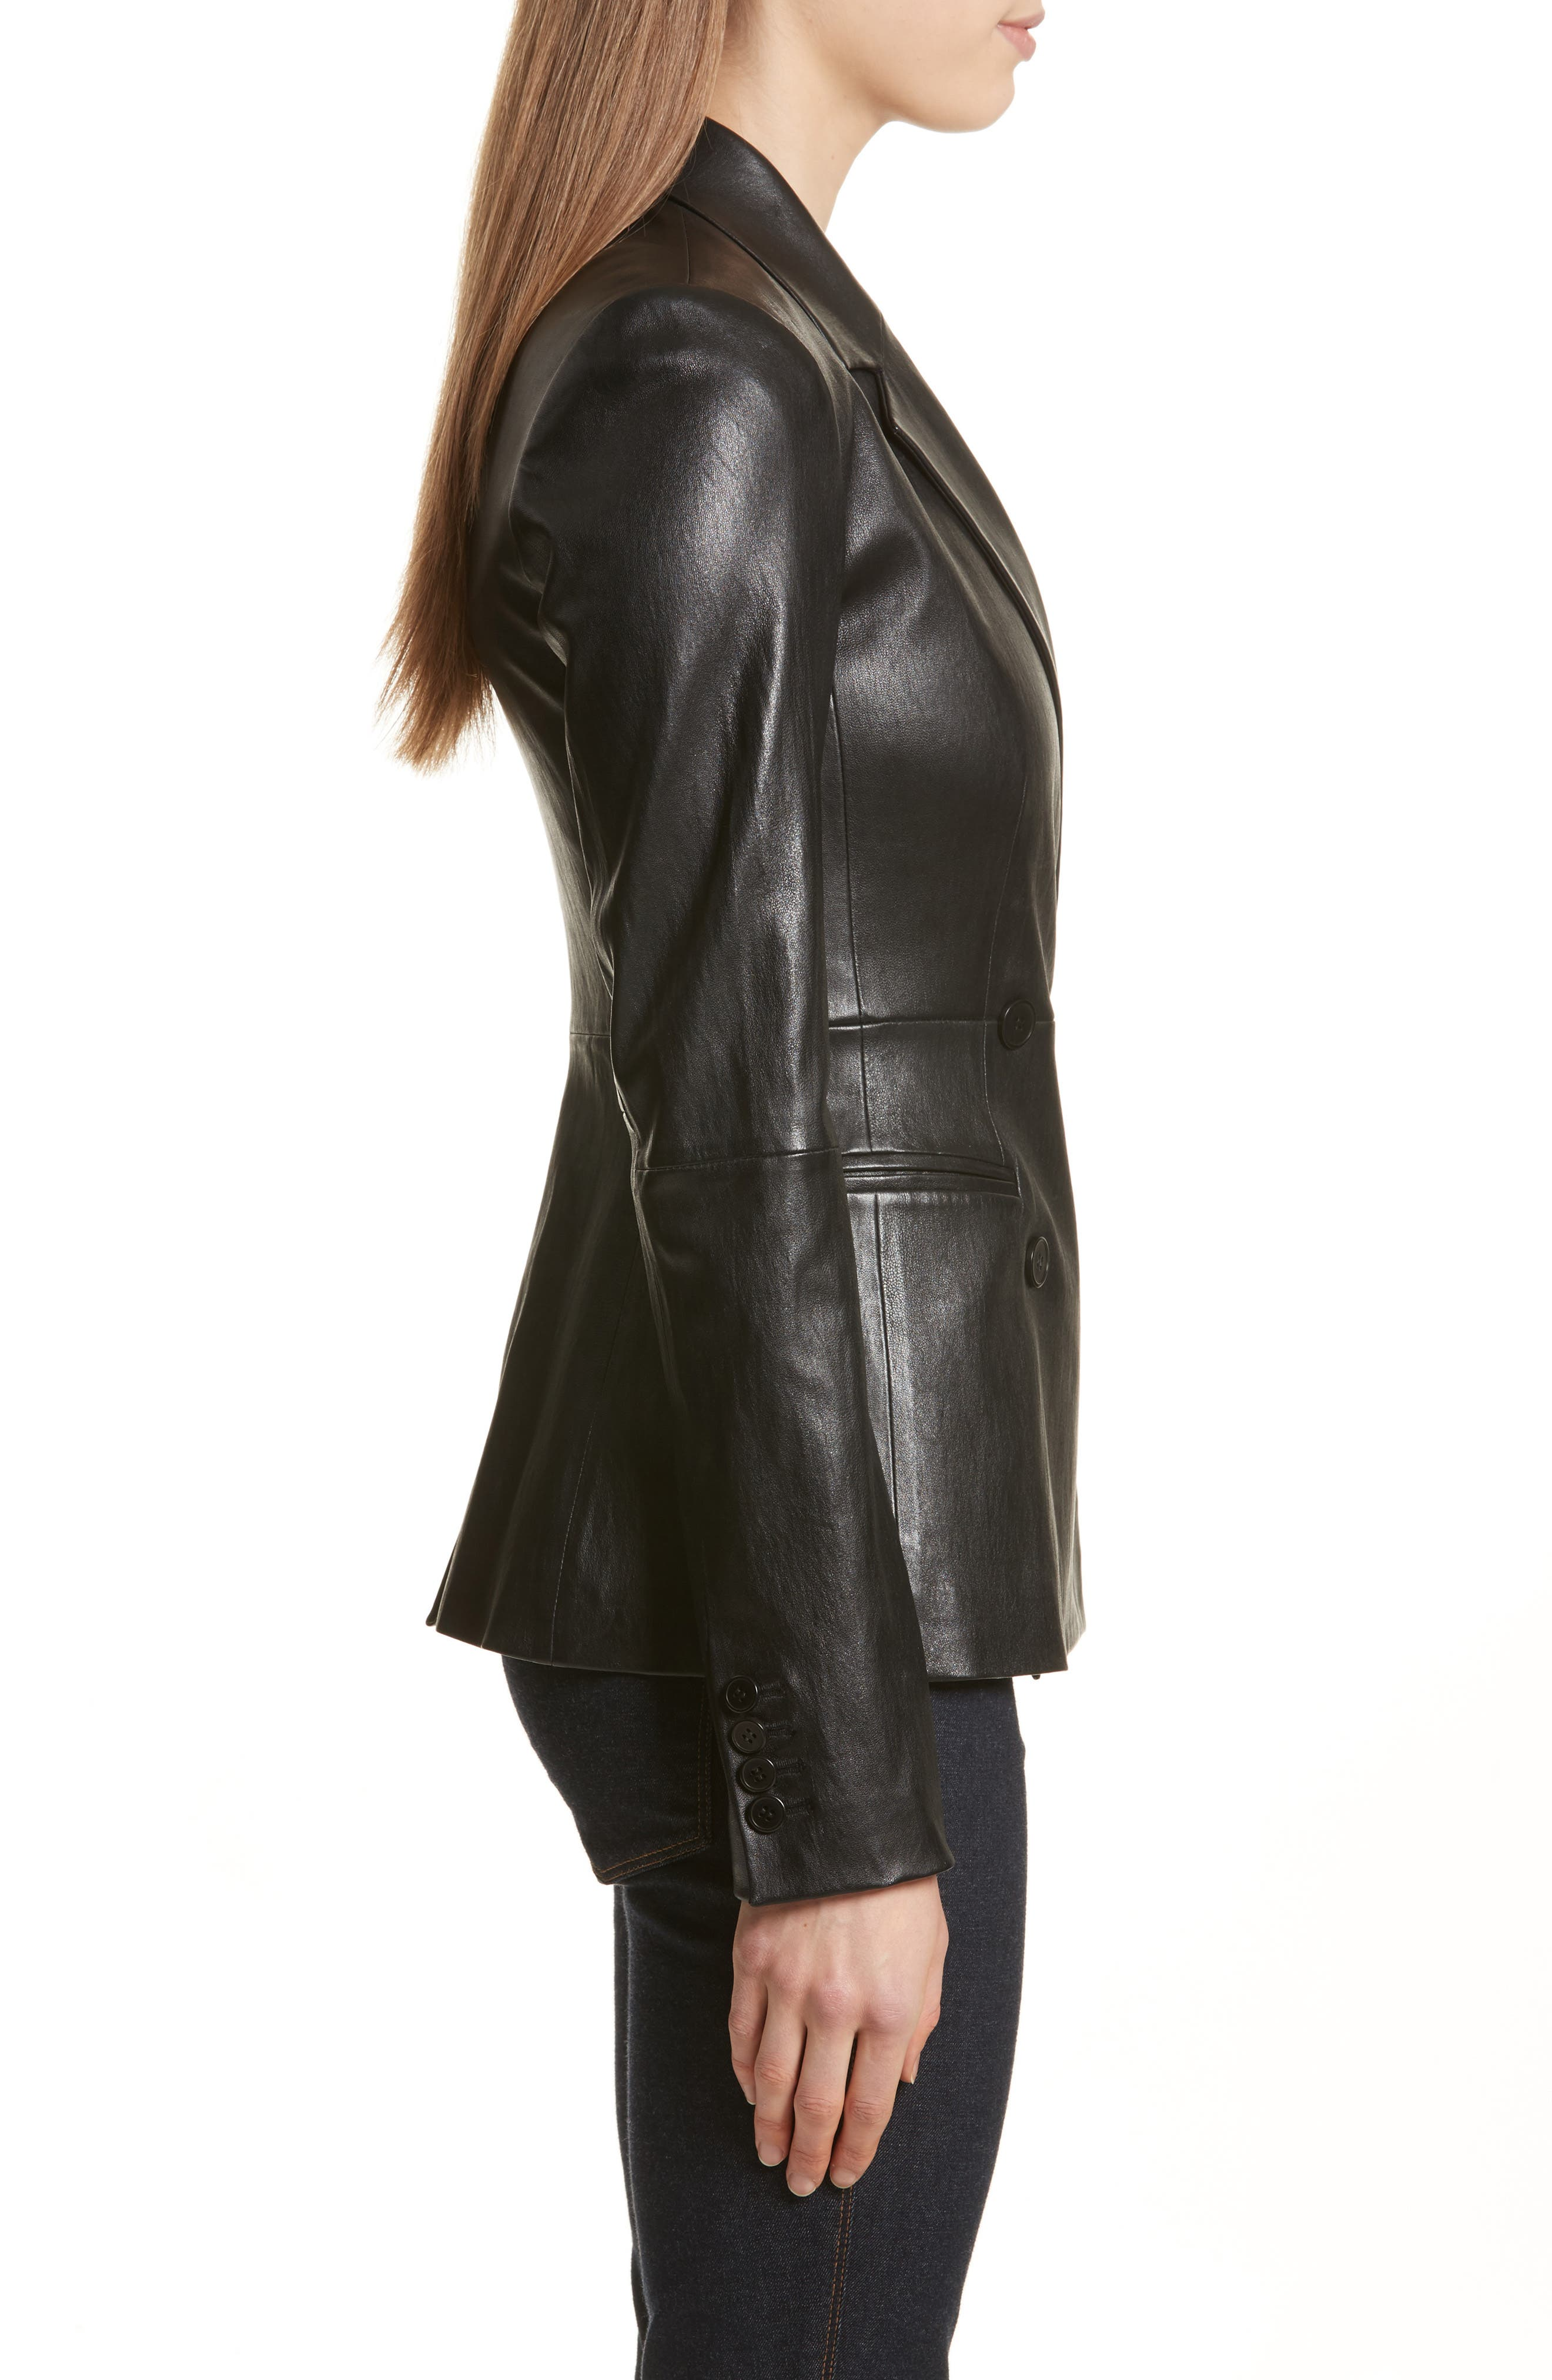 Bristol Leather Blazer,                             Alternate thumbnail 3, color,                             Black